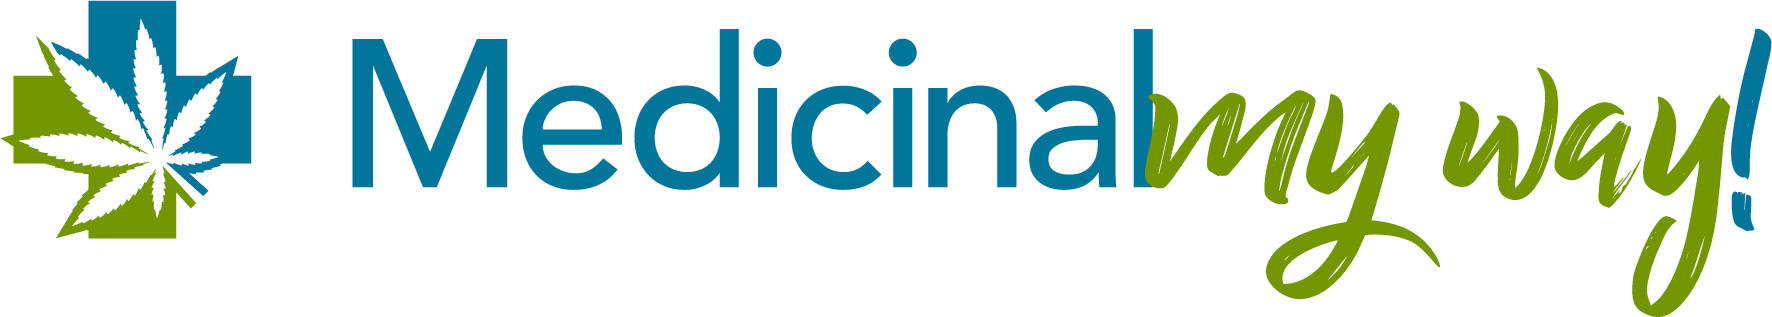 Medicinal My Way logo